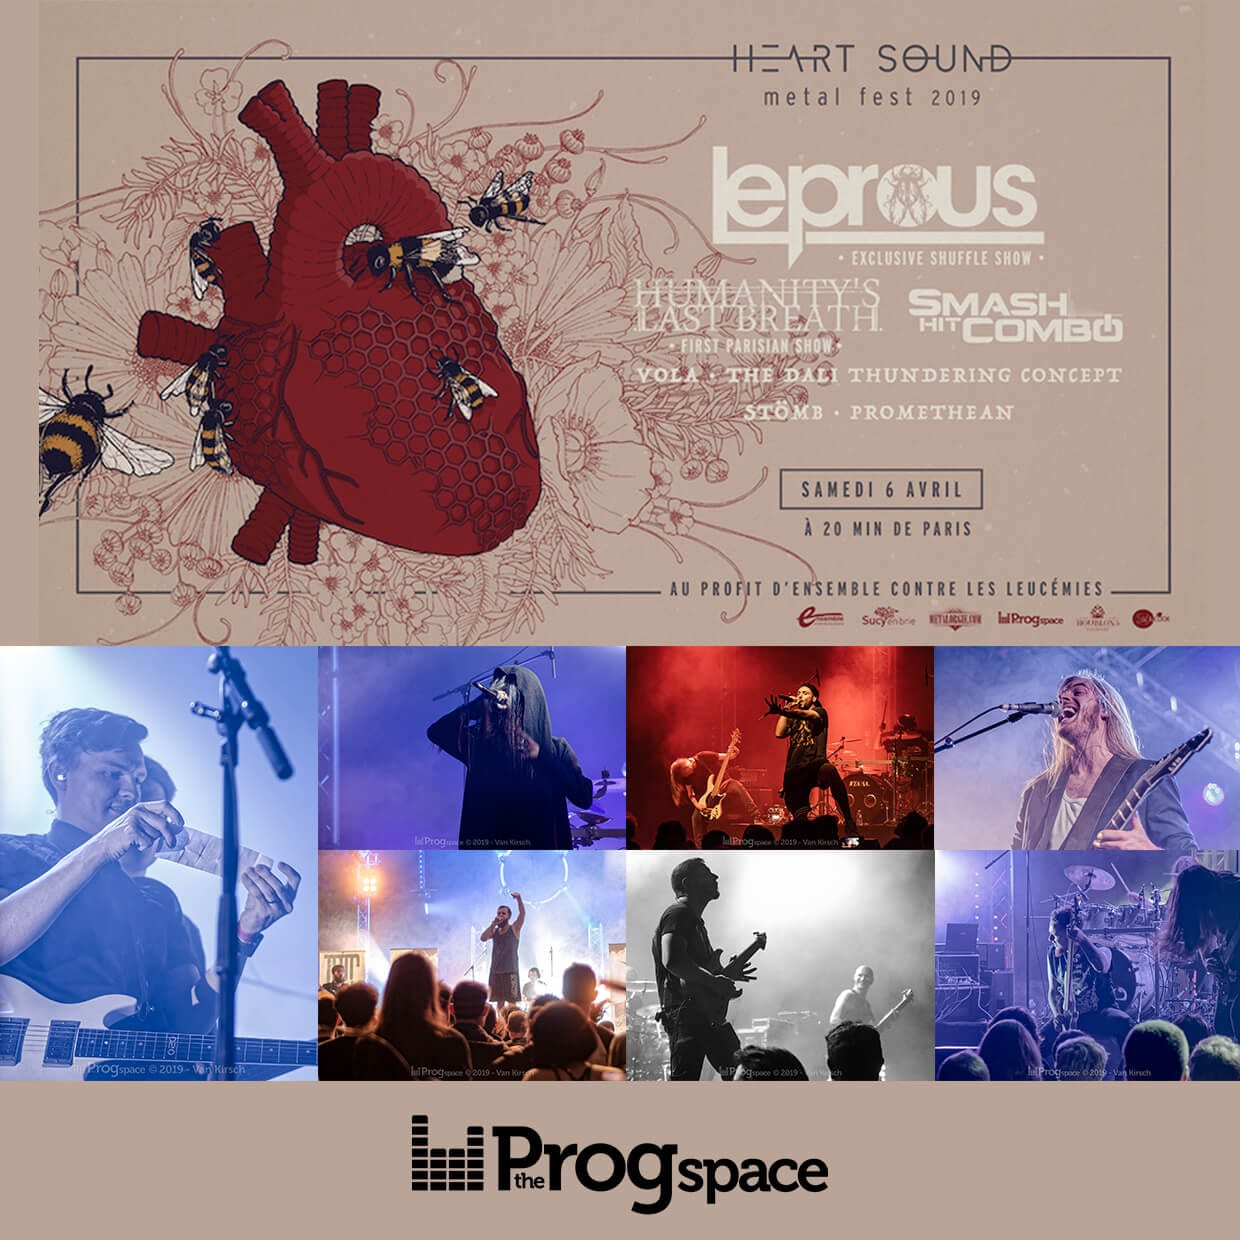 Heart Sound Metal Fest – 6 April 2019